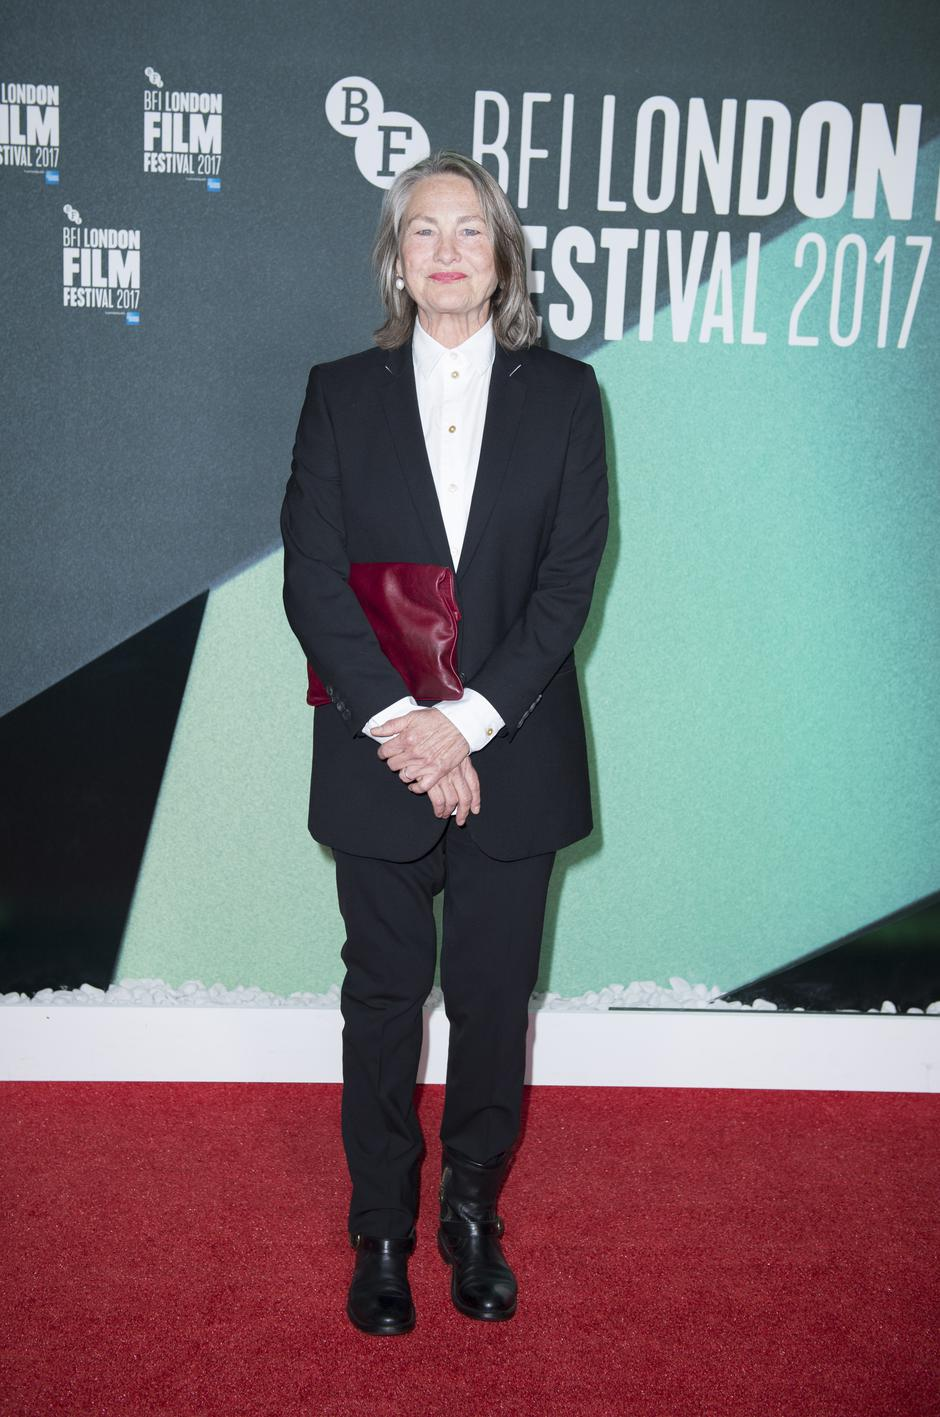 BFI London Film Festival The Party Premiere | Autor: Andrew Sims/News Syndication/PIXSELL/NI Syndication/PIXSELL